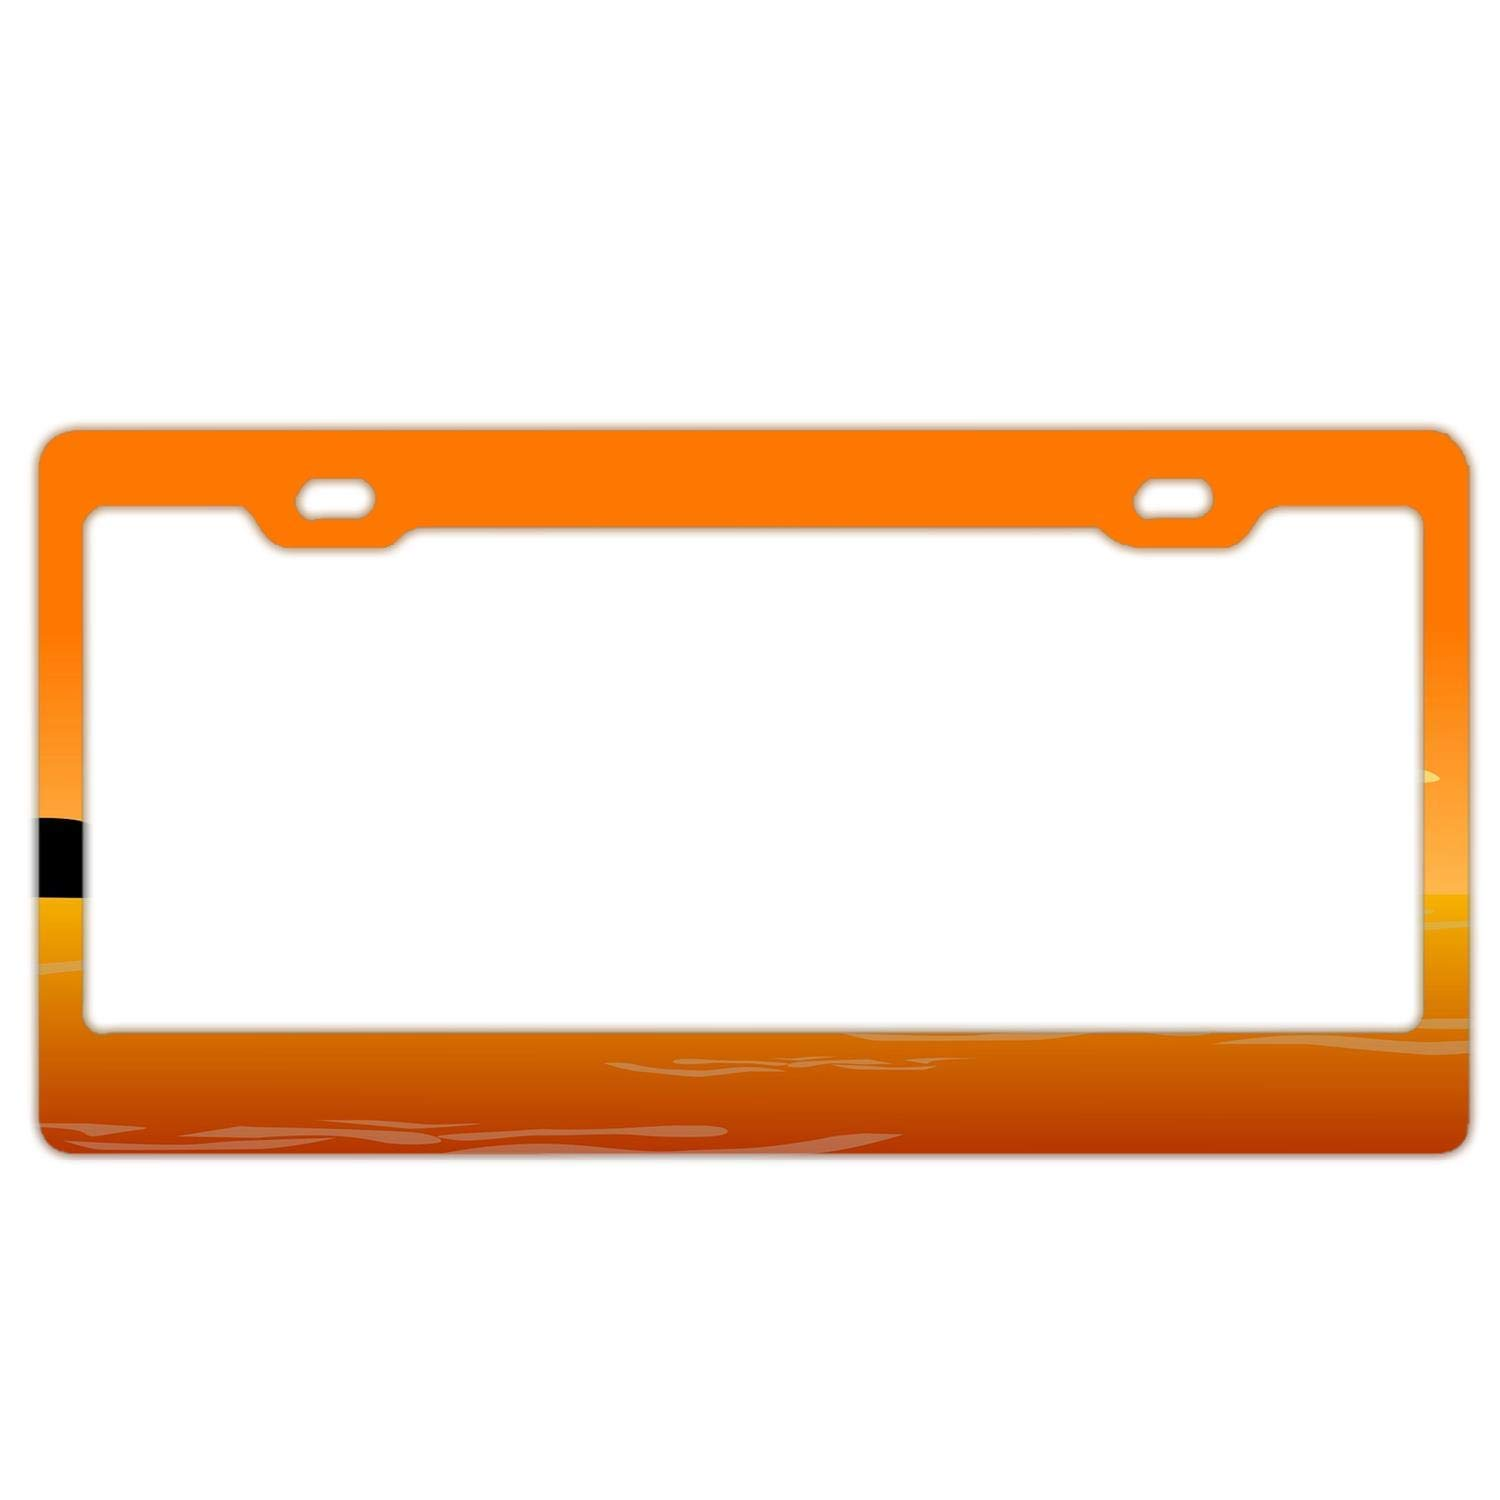 2X FORTE Stainless Steel METAL License Plate Frame Rust Free W// Caps